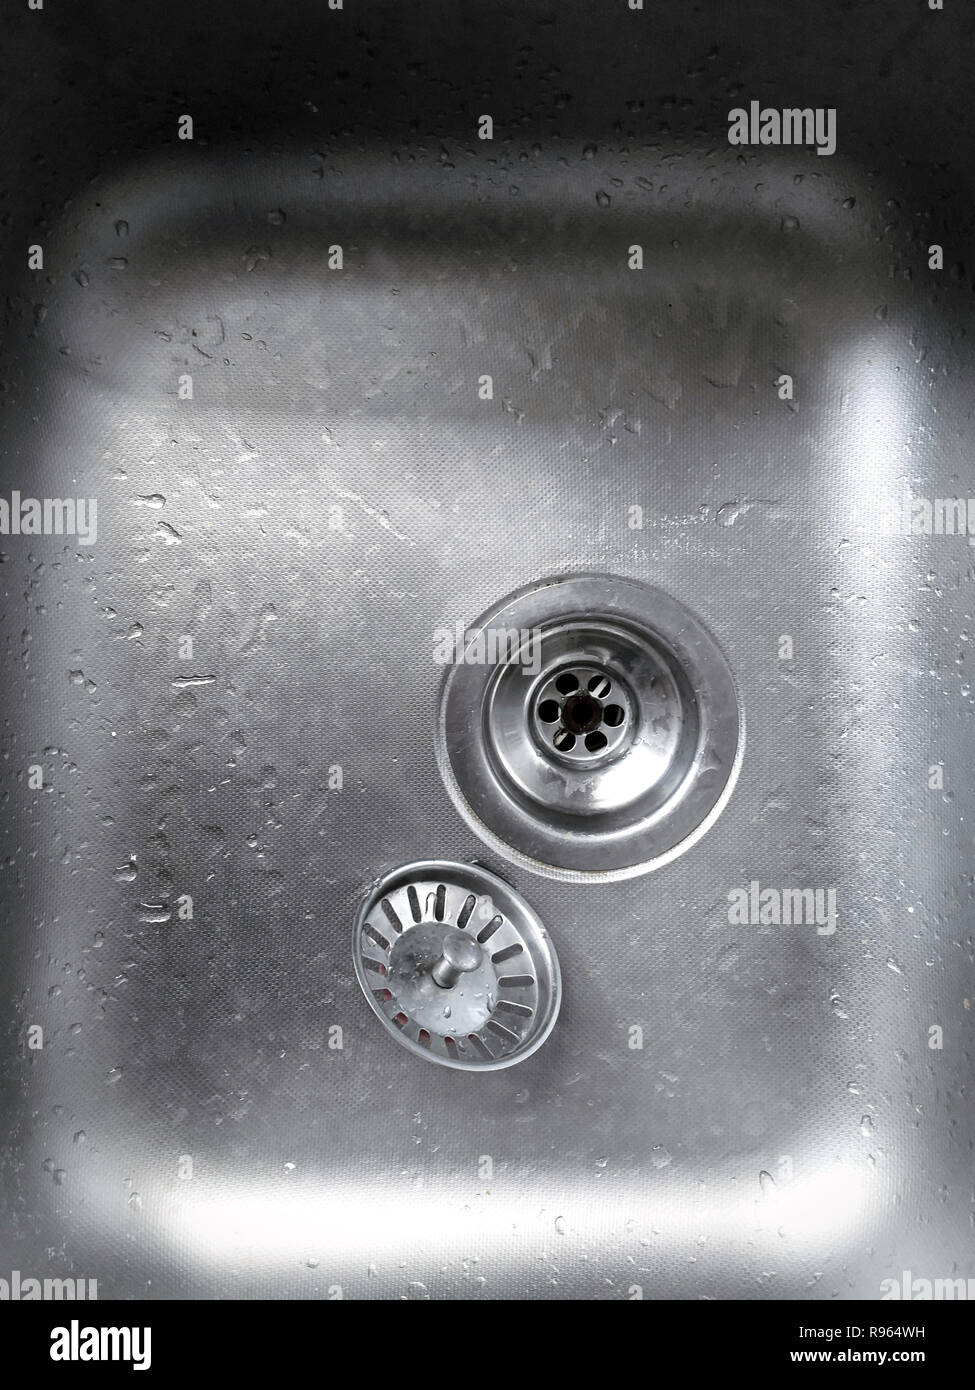 Kitchen Sink Isolated On White Background Stainless Steel Single Bowl Inset Sink Kitchen Sink Top View Built In Appliances Kitchen Appliance Dome Stock Photo Alamy